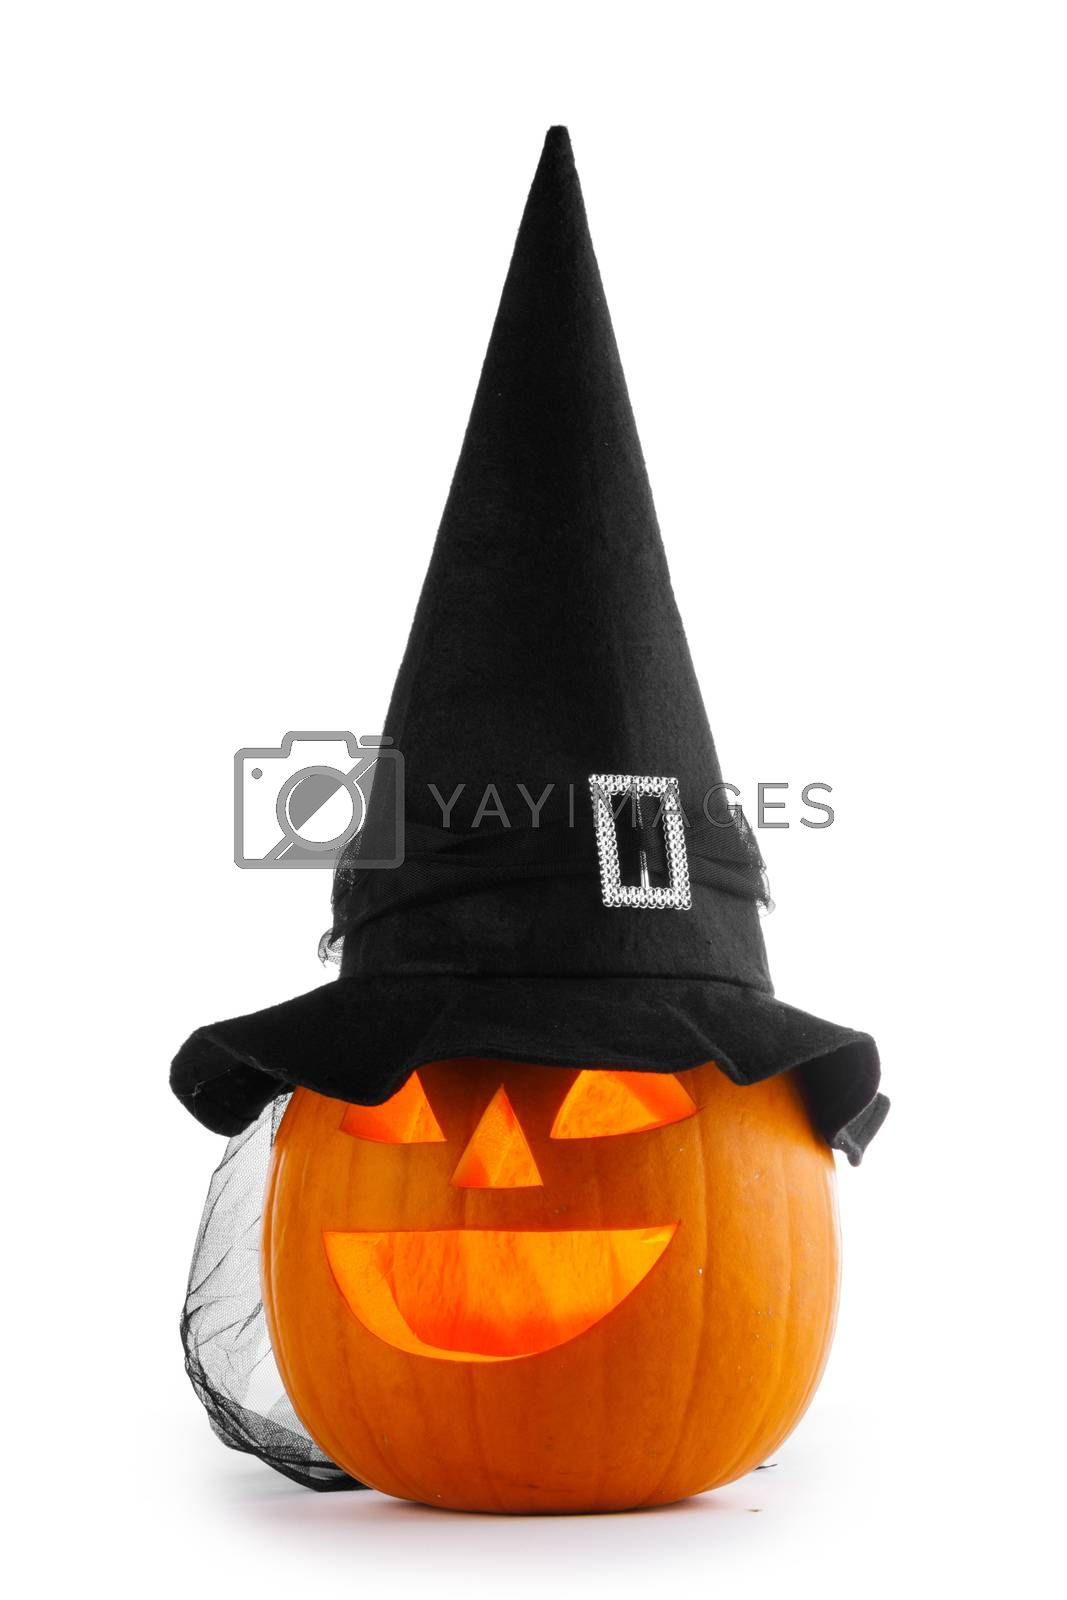 Jack O Lantern Halloween pumpkin with witches hat isolated on white background